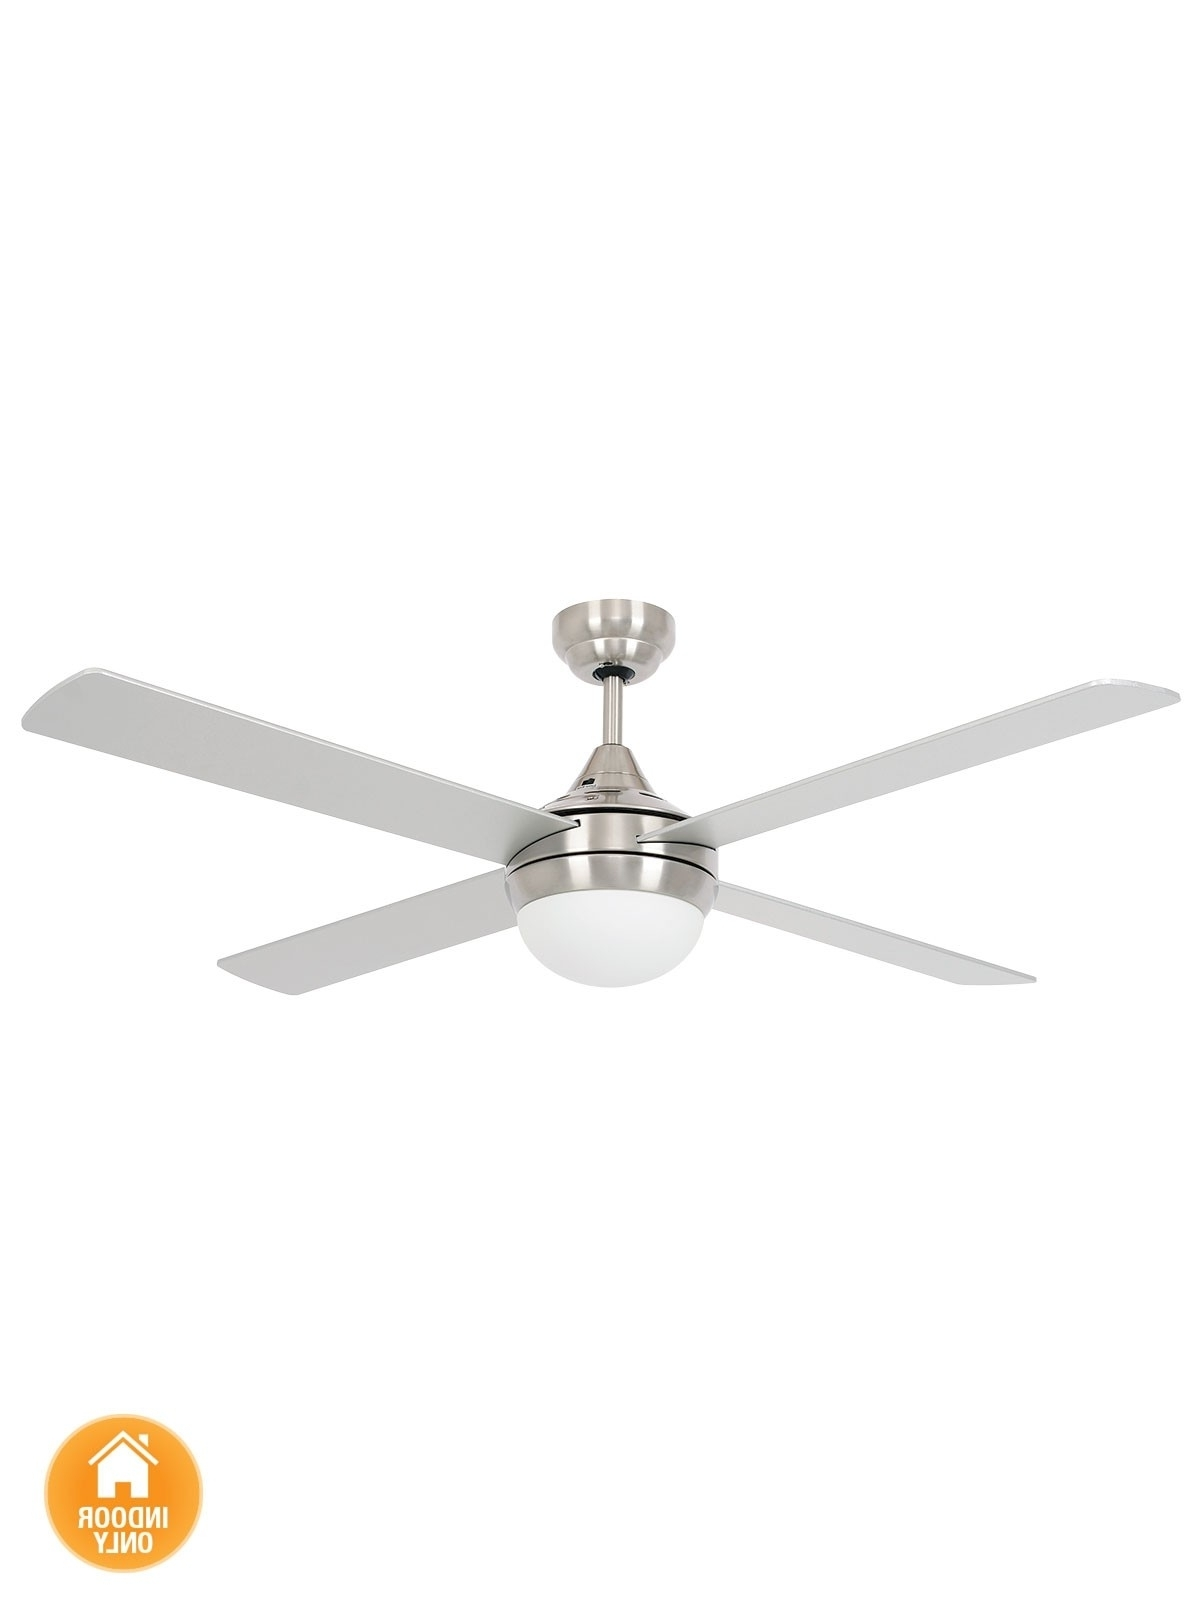 Beacon Lighting With Regard To Preferred Sunshine Coast Outdoor Ceiling Fans (Gallery 5 of 20)